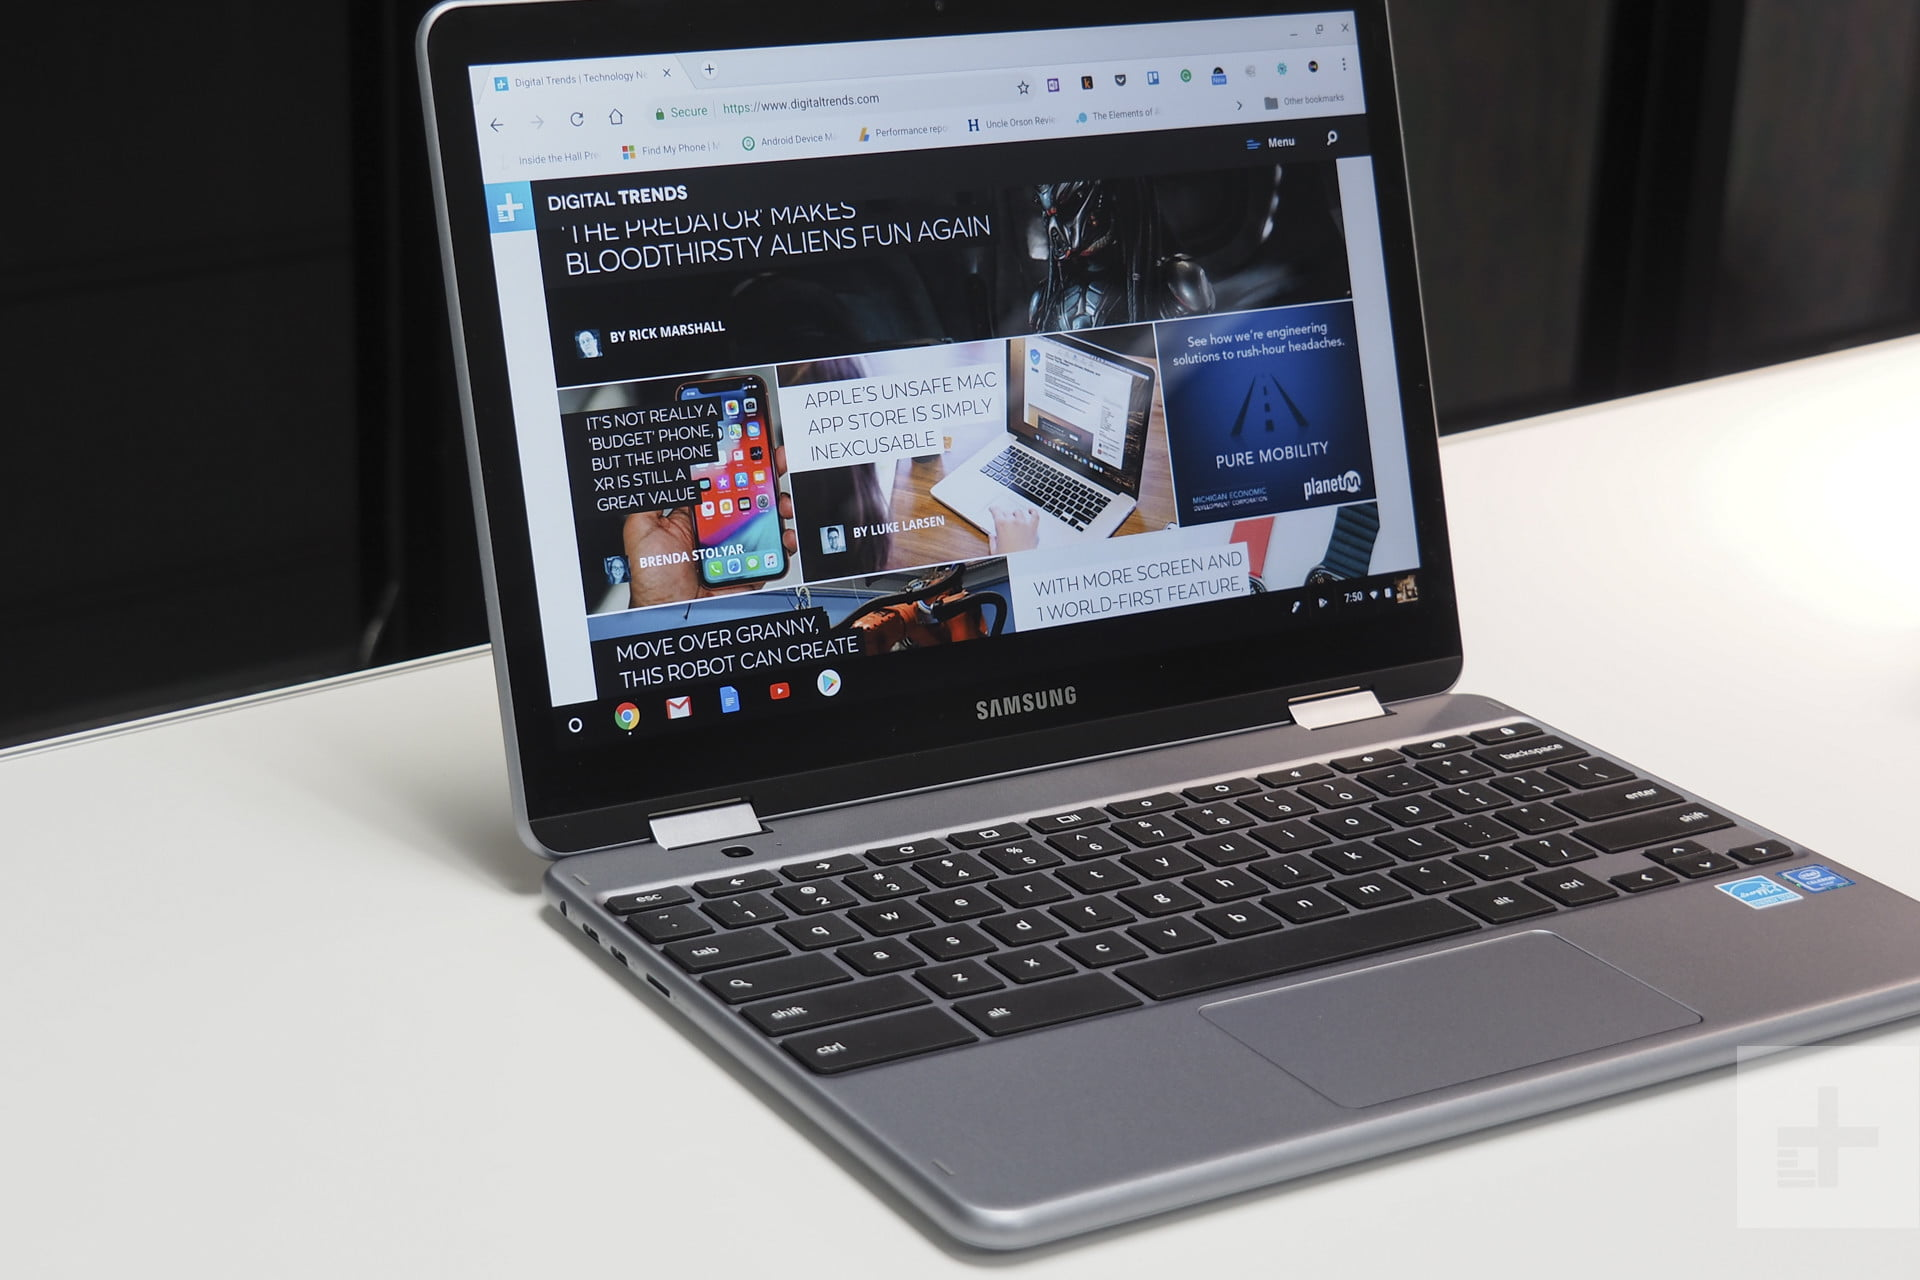 Samsung Chromebook Plus V2 With Core M3 CPU is Now $100 Off